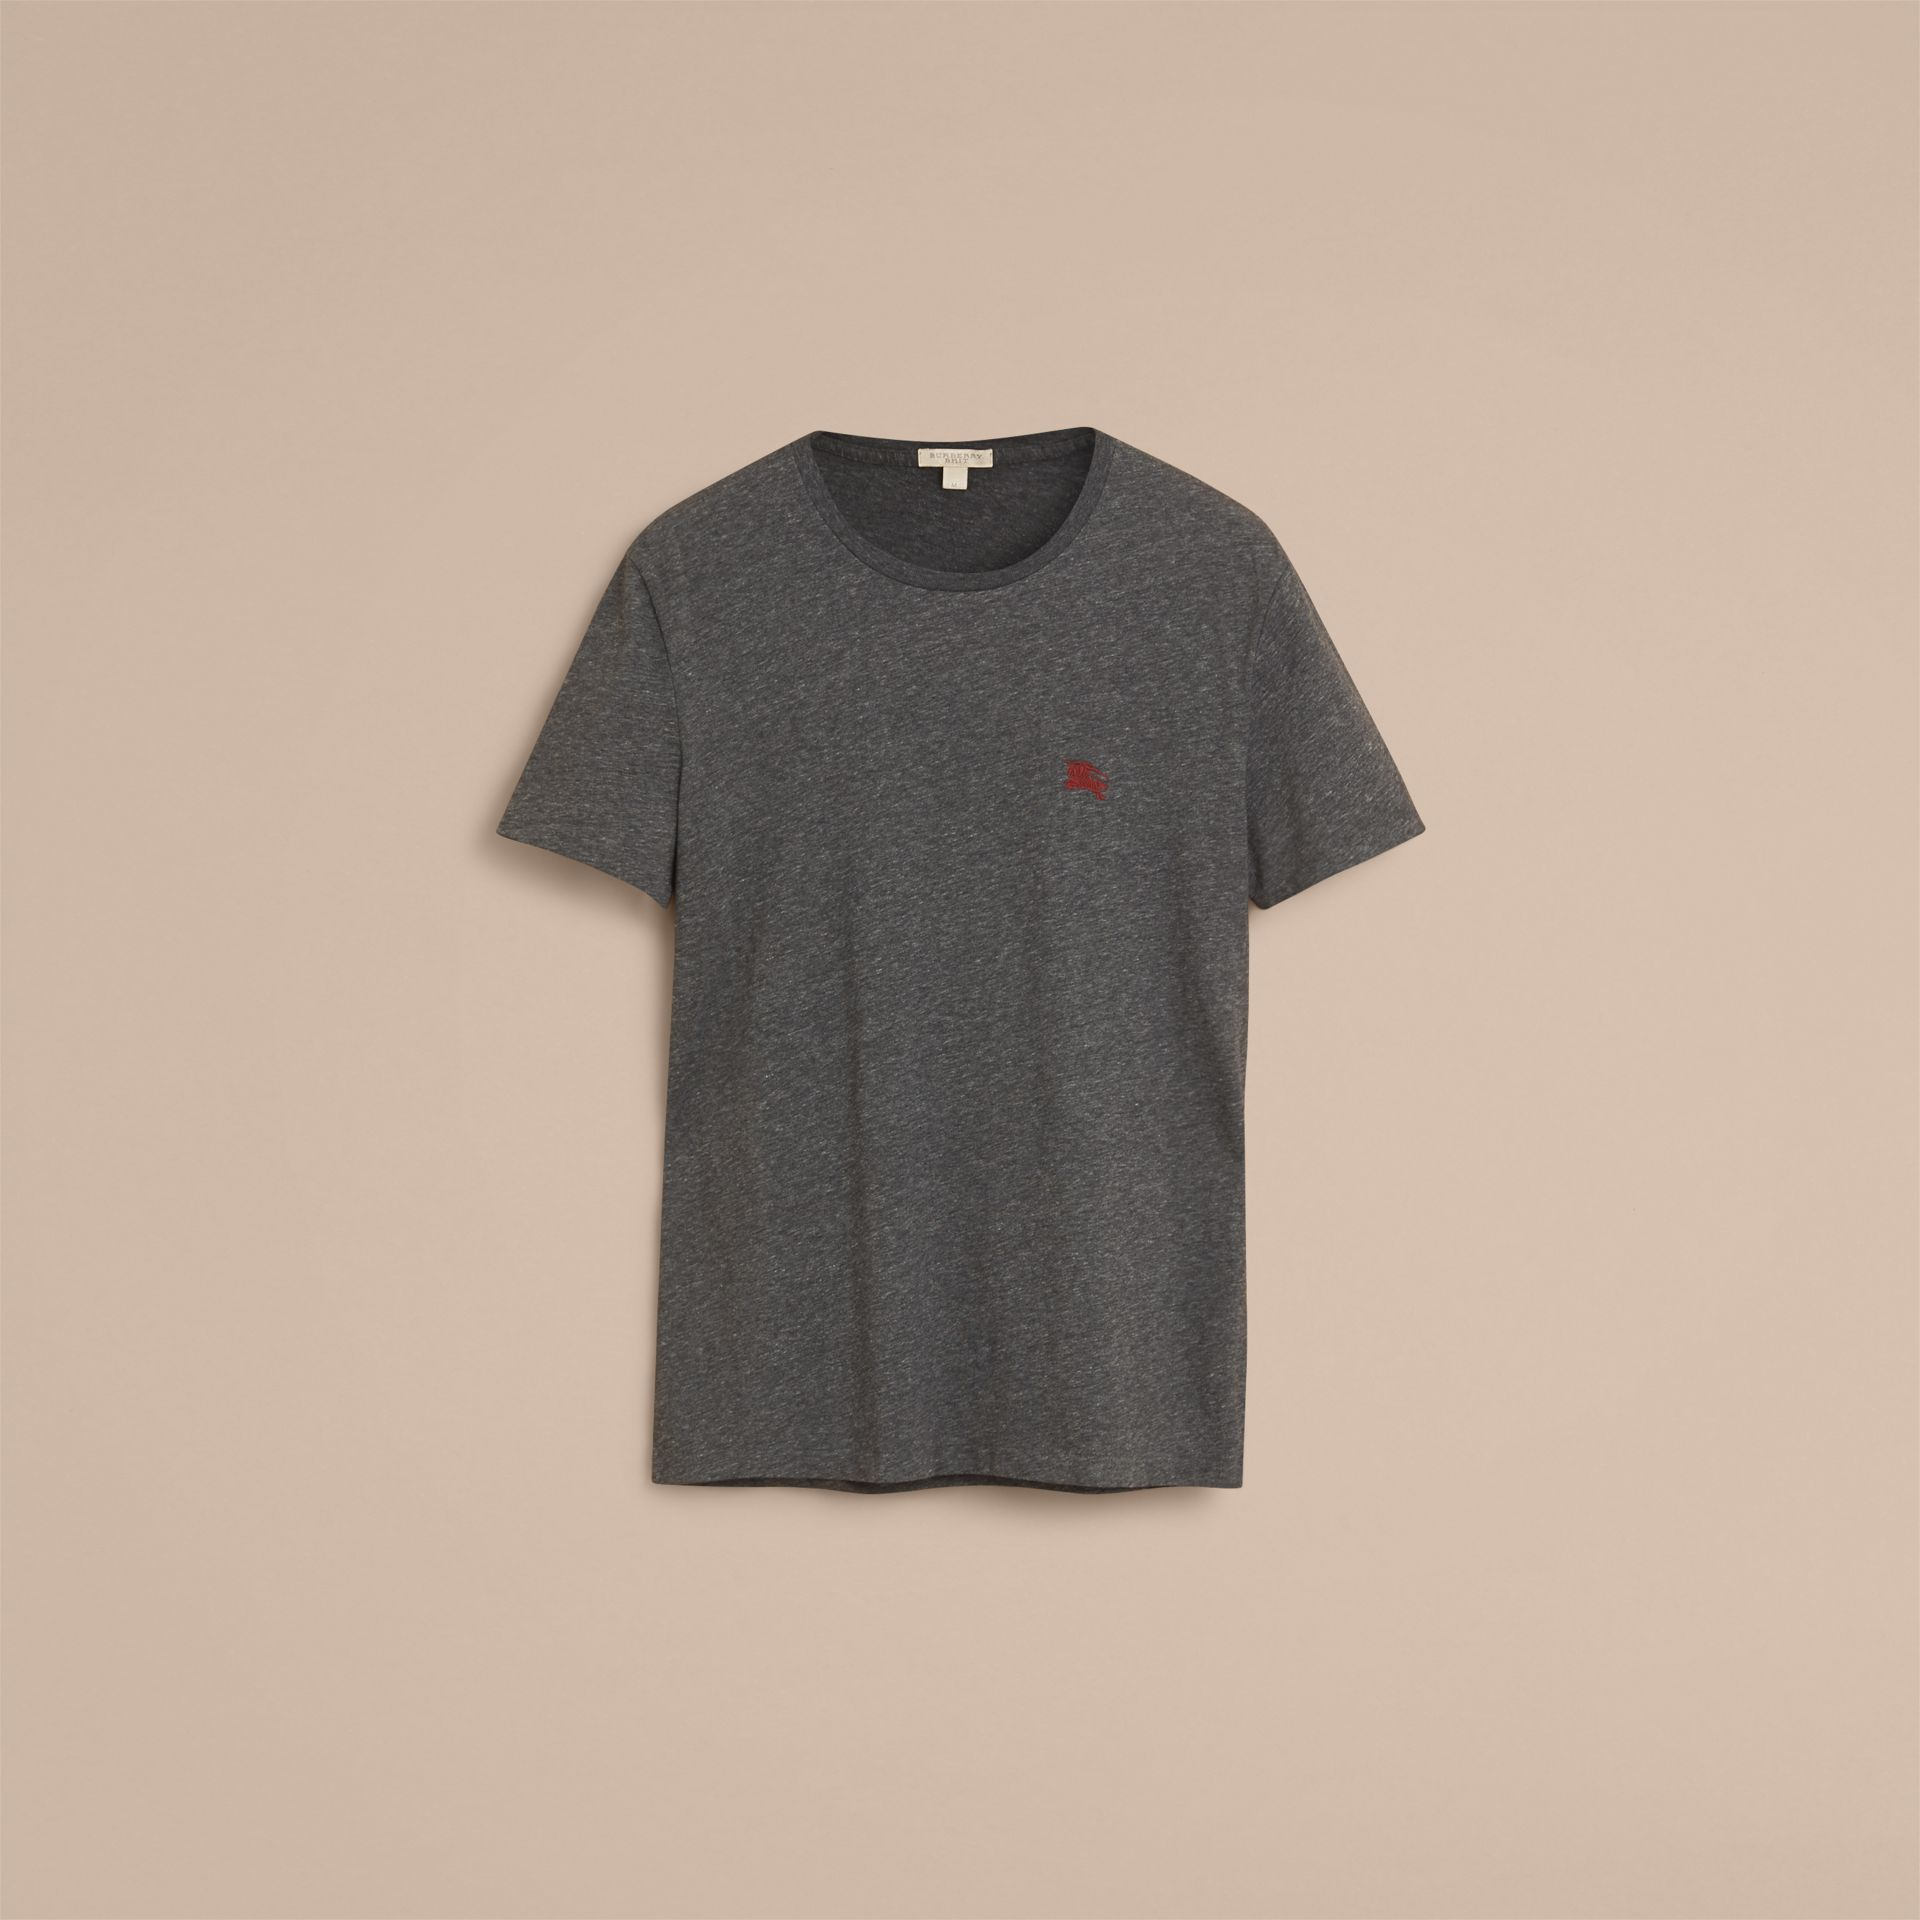 Cotton Jersey T-shirt in Dark Grey Melange - Men | Burberry - gallery image 4